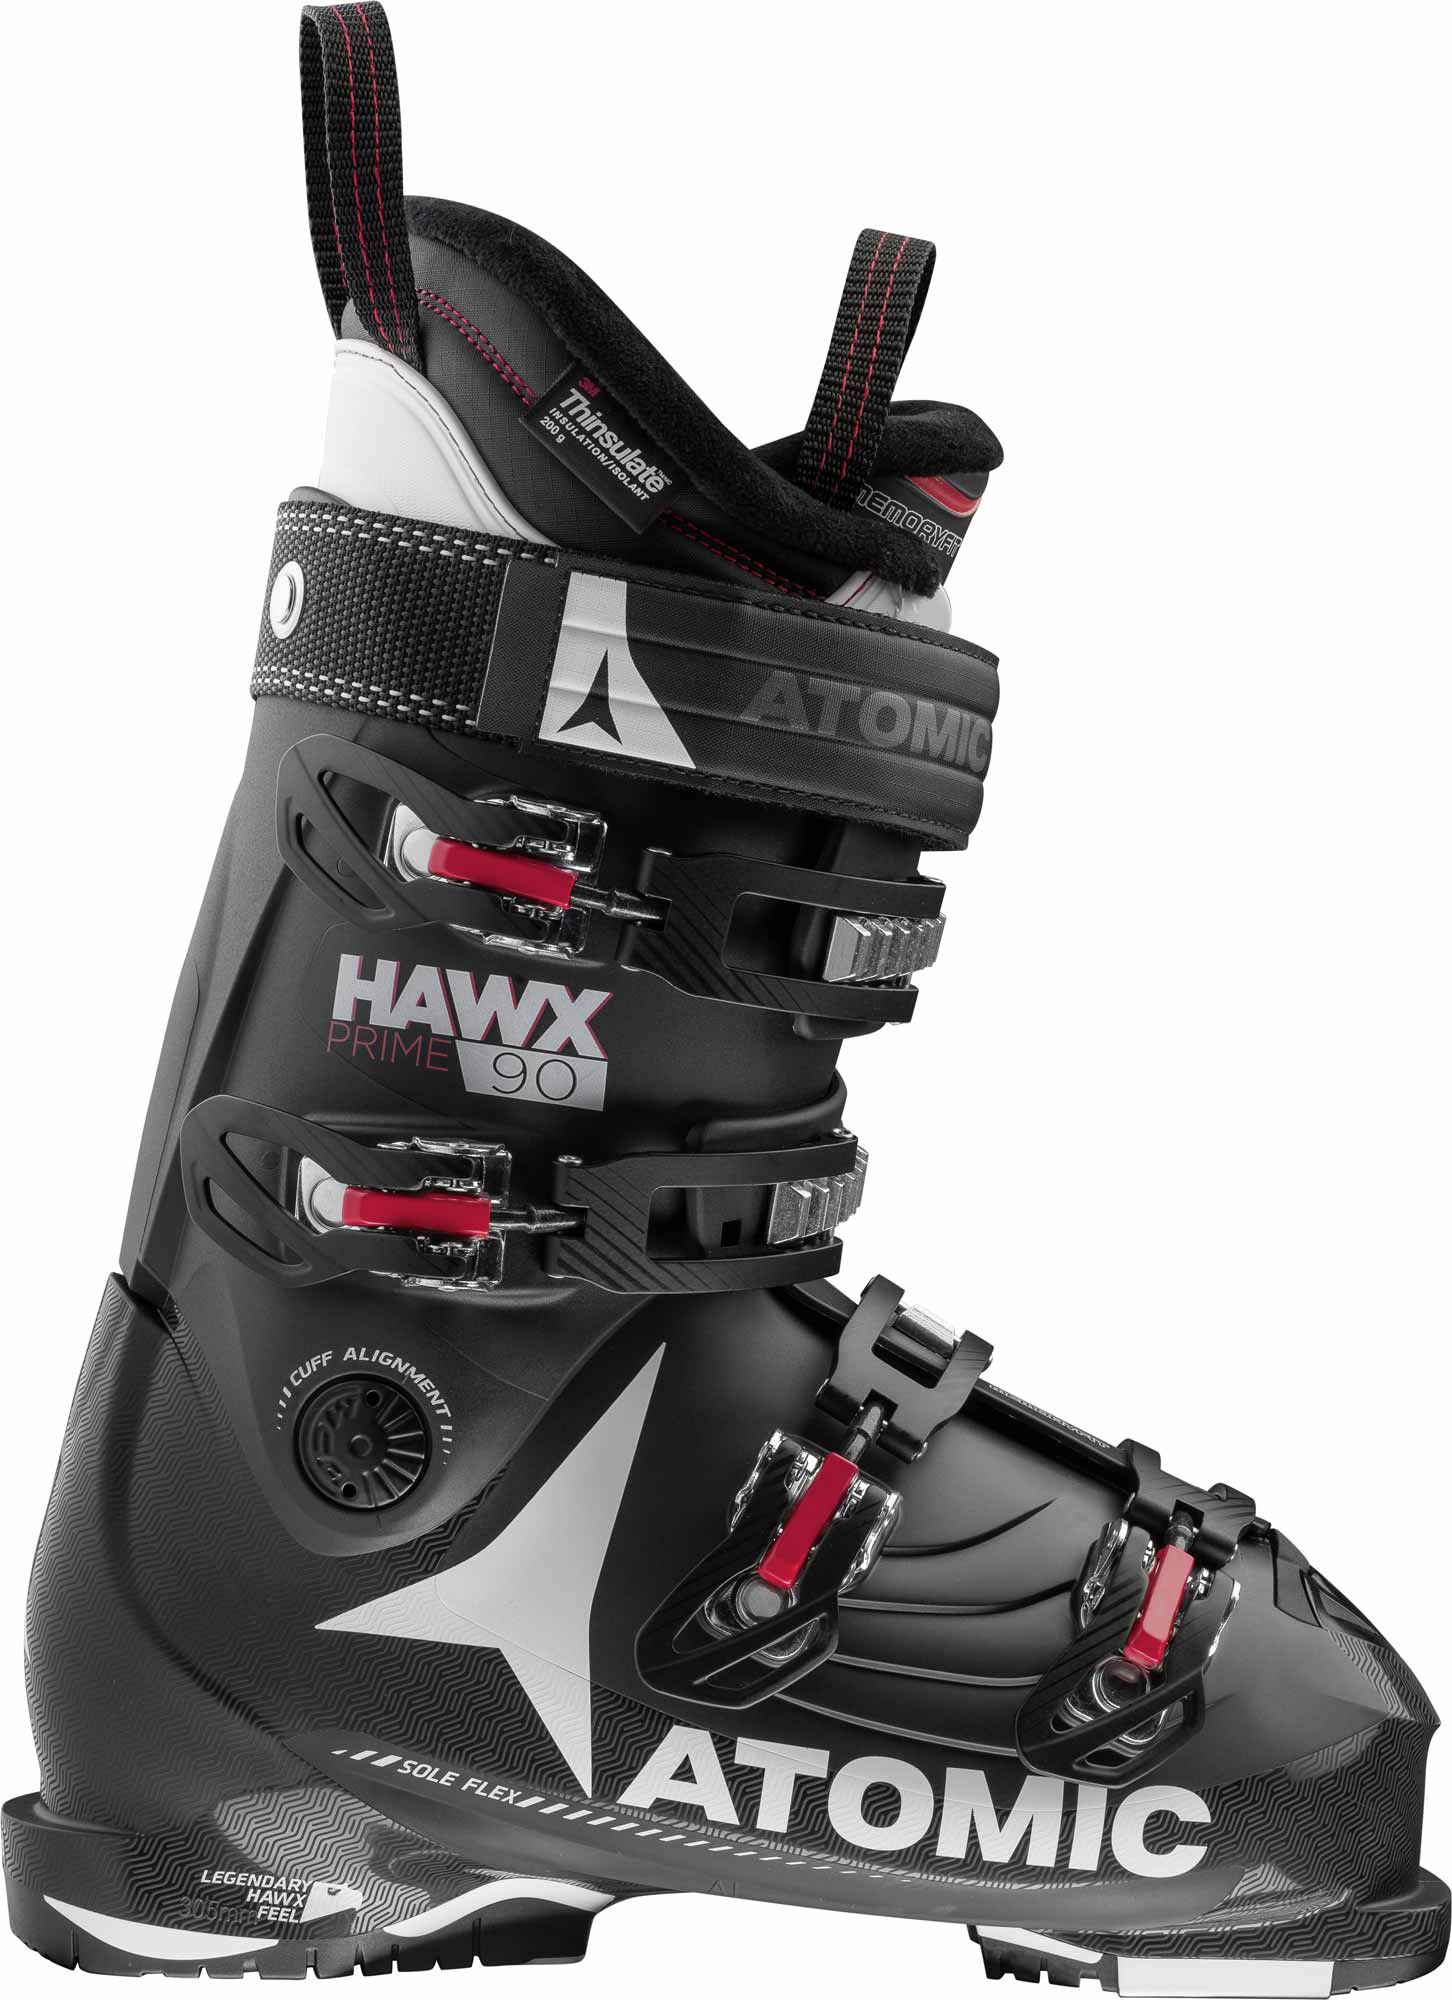 Atomic Hawx Prime 90 - All Mountain Skischuhe